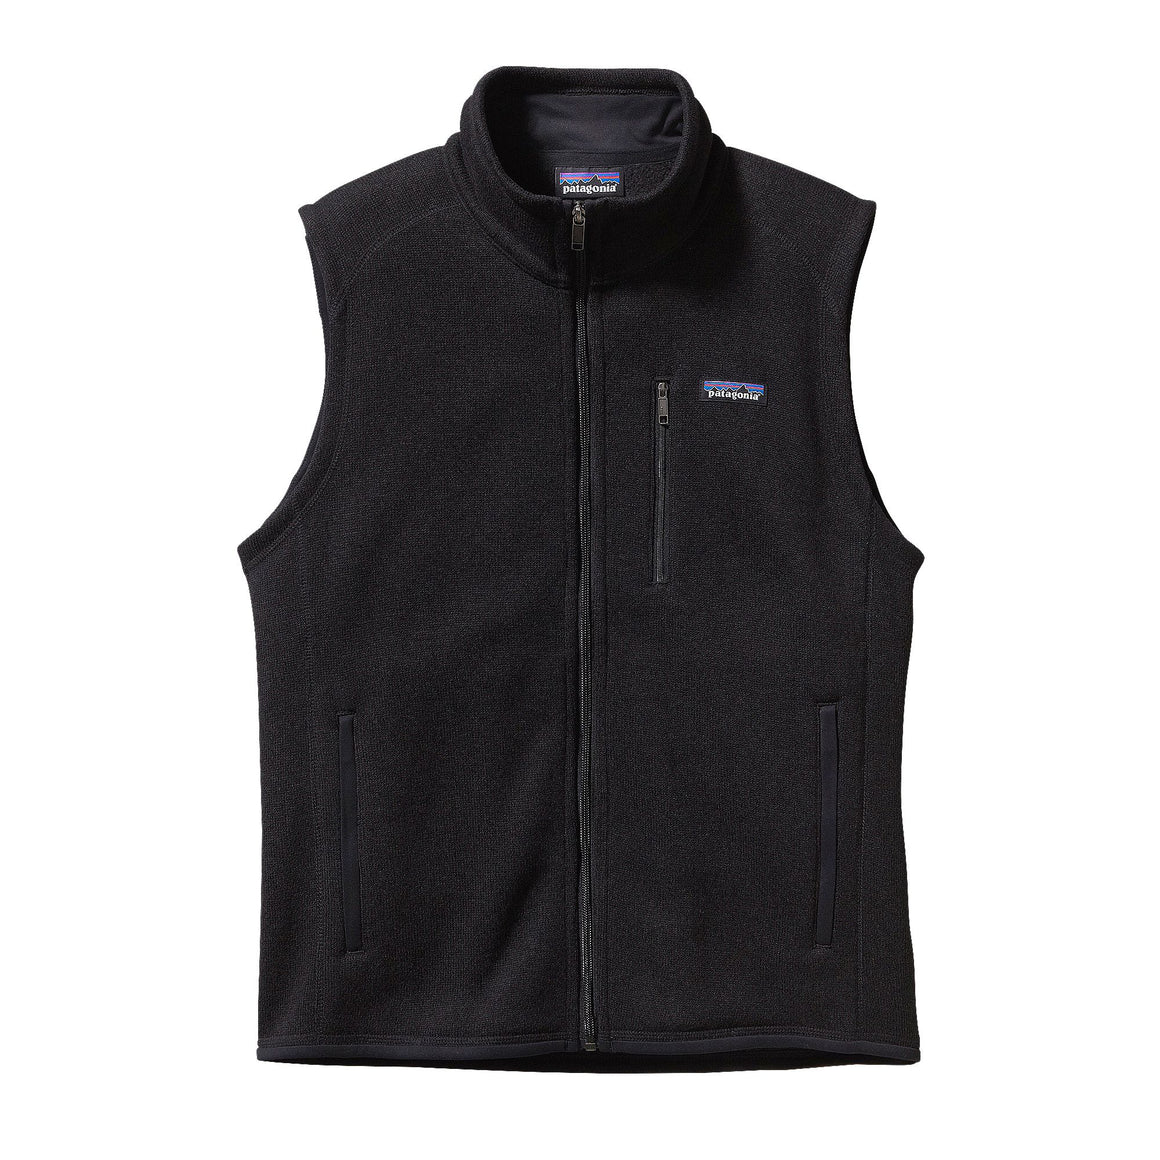 Patagonia Men's Better Sweater™ Fleece Vest - Black